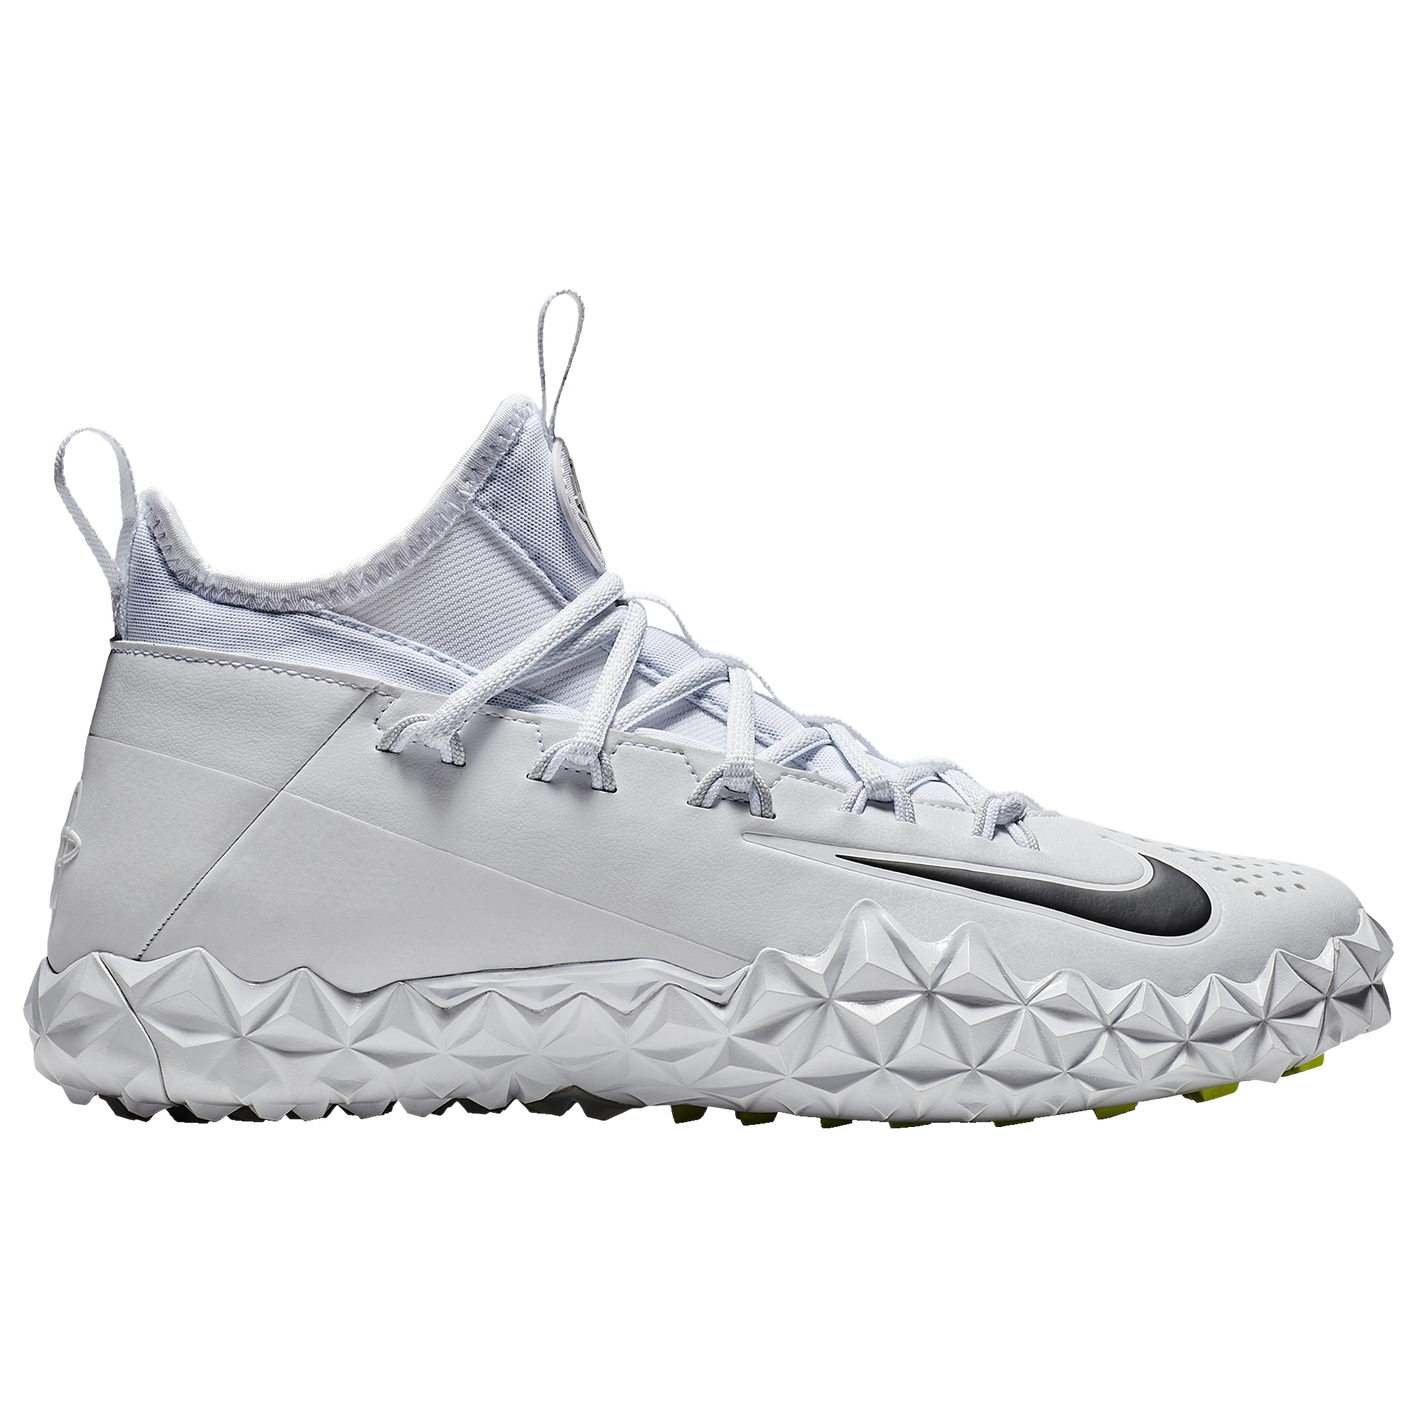 7bbefec9f Nike Alpha Huarache 6 Elite Turf LAX - Men's - Lacrosse - Shoes ...